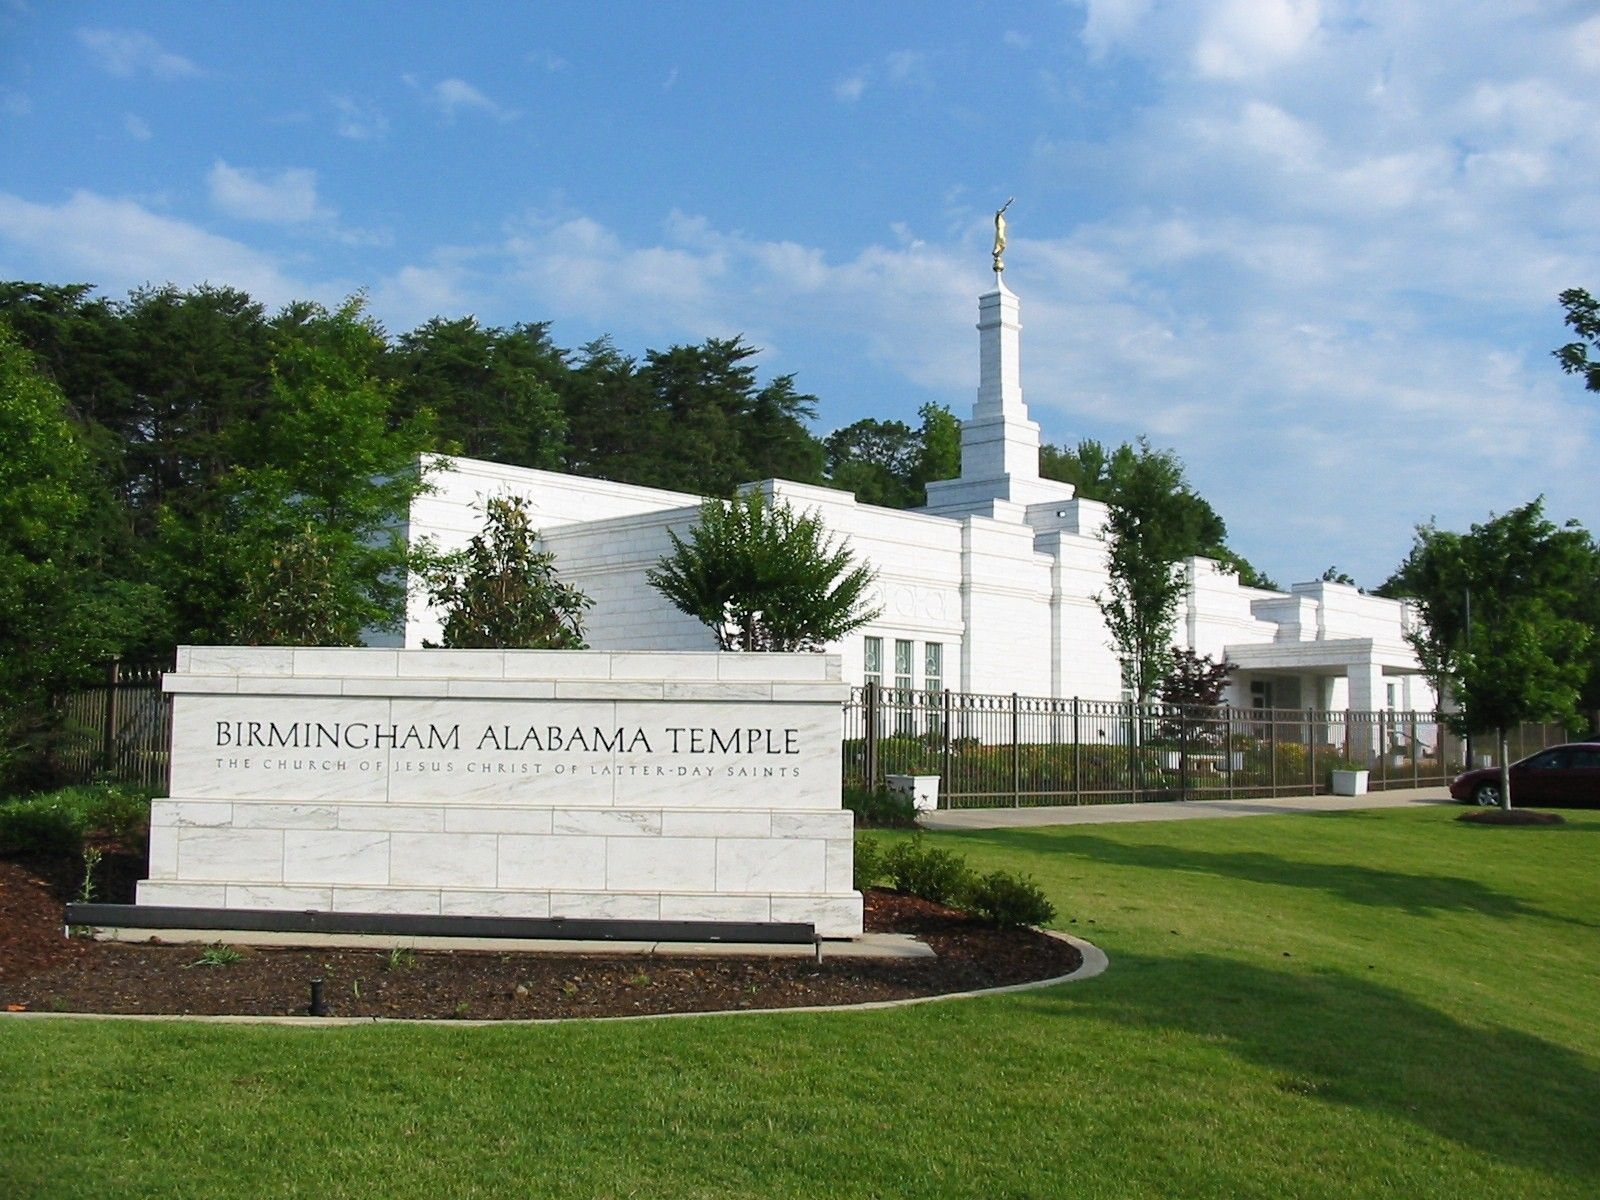 The temple name sign on the grounds of the Birmingham Alabama Temple.